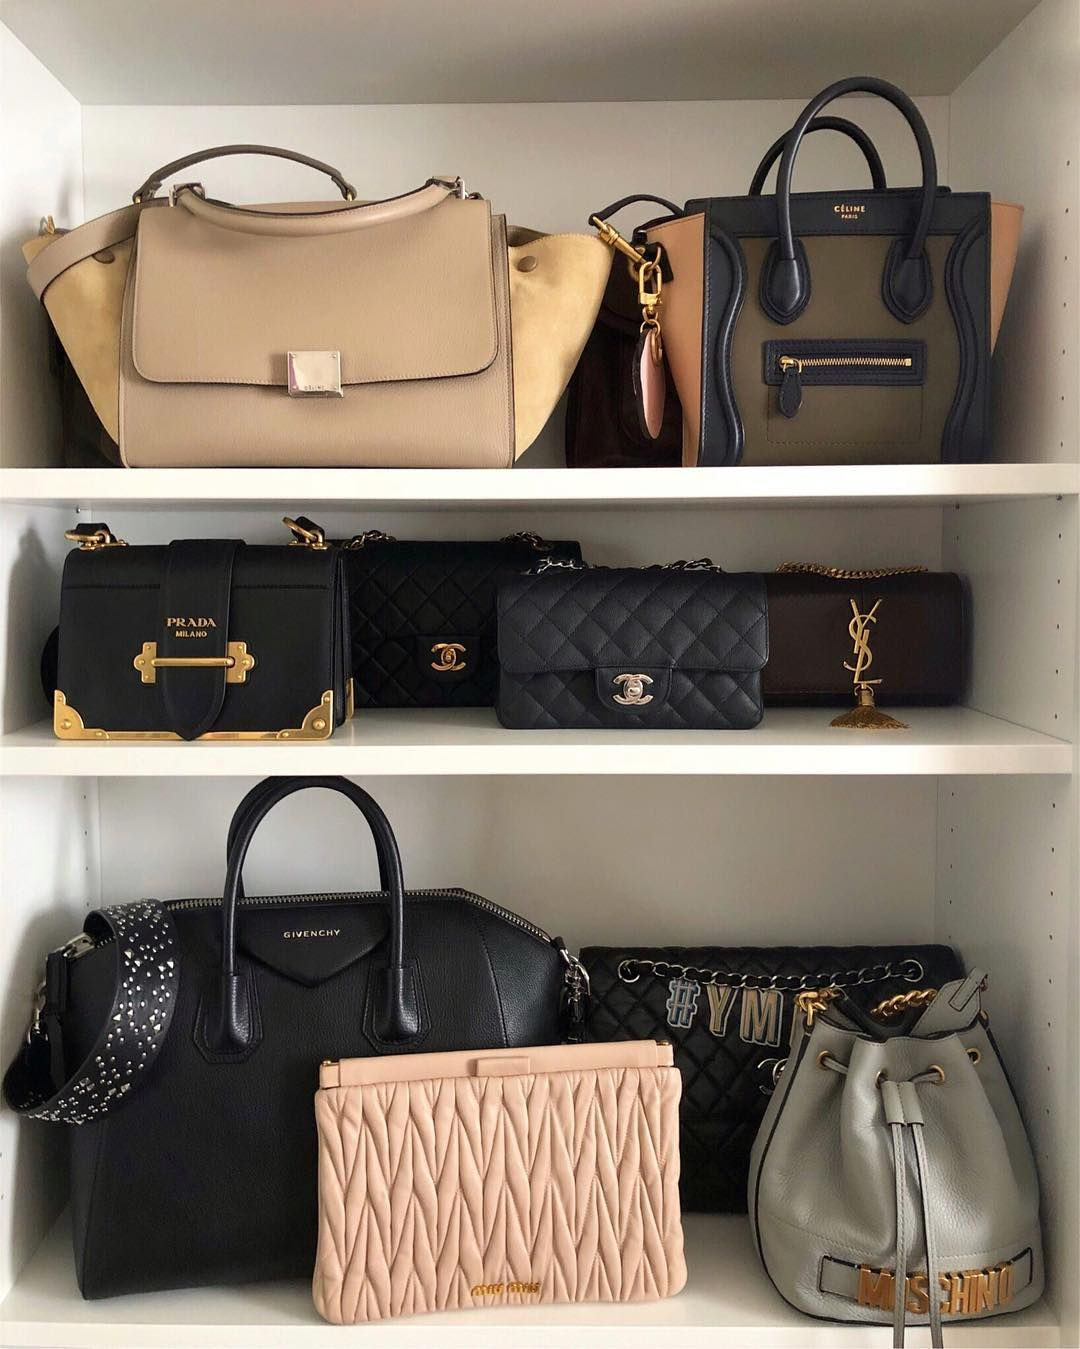 5ab92130a463 Designer handbag collection as stored on IKEA Billy Bookcase: Celine  trapeze, Celine nano,